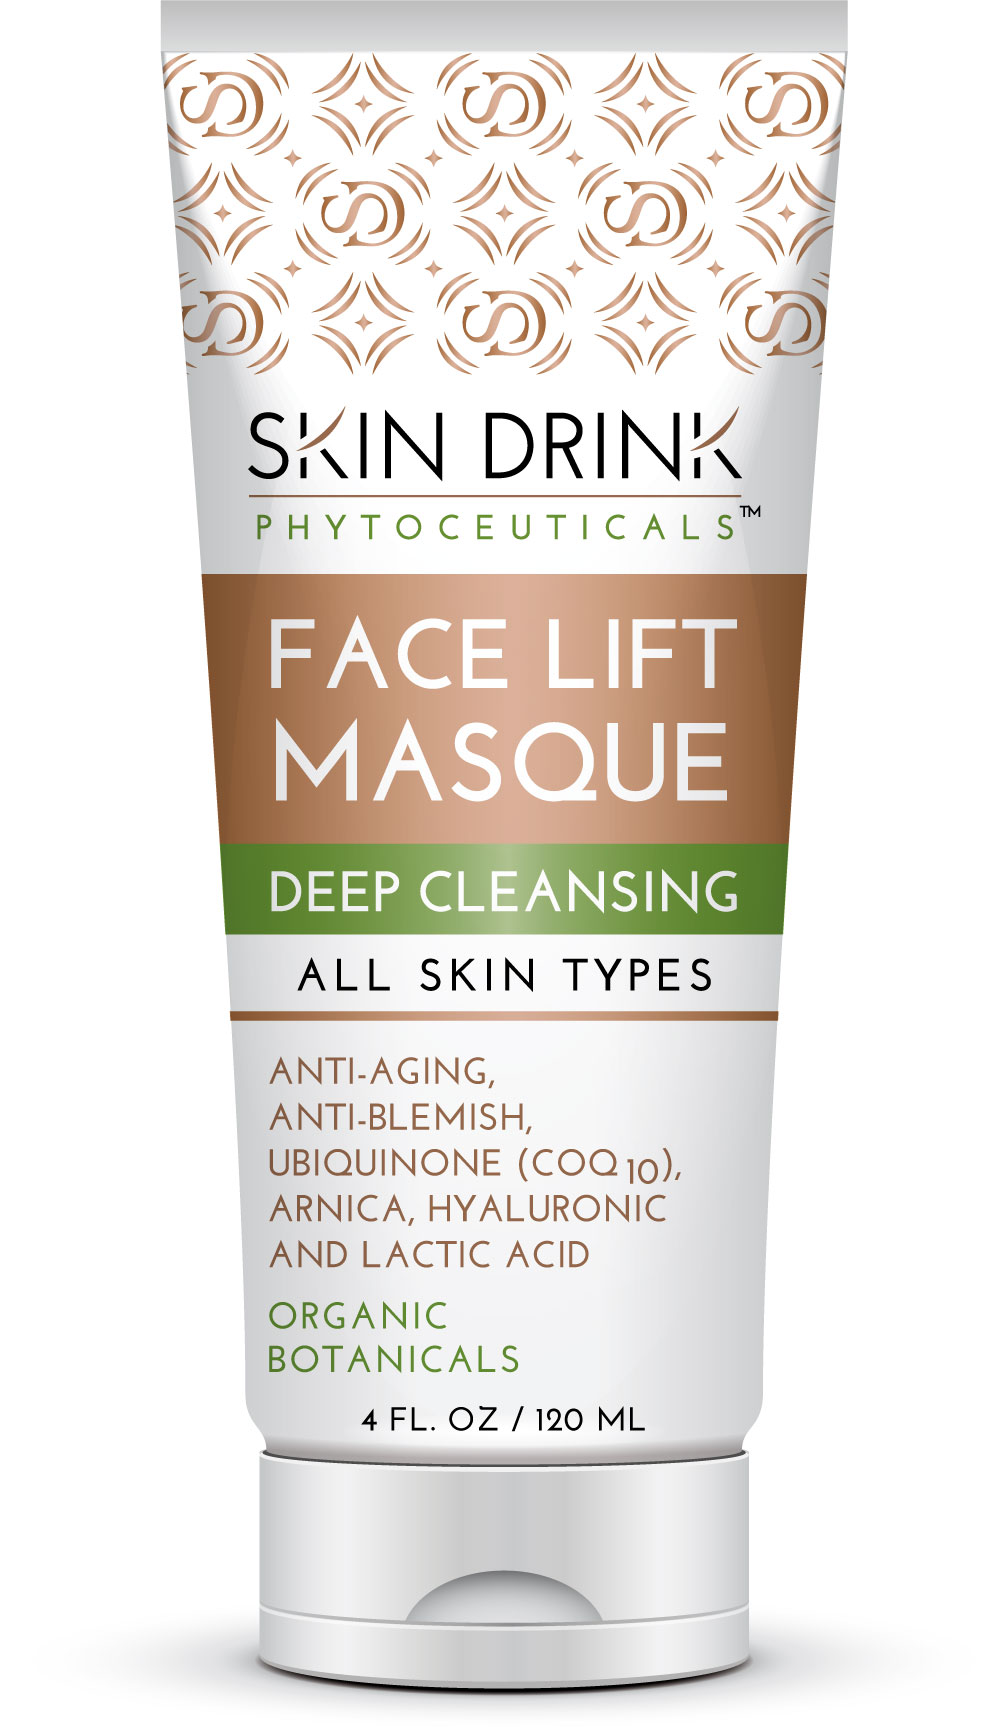 Skin Drink Skin Care Products